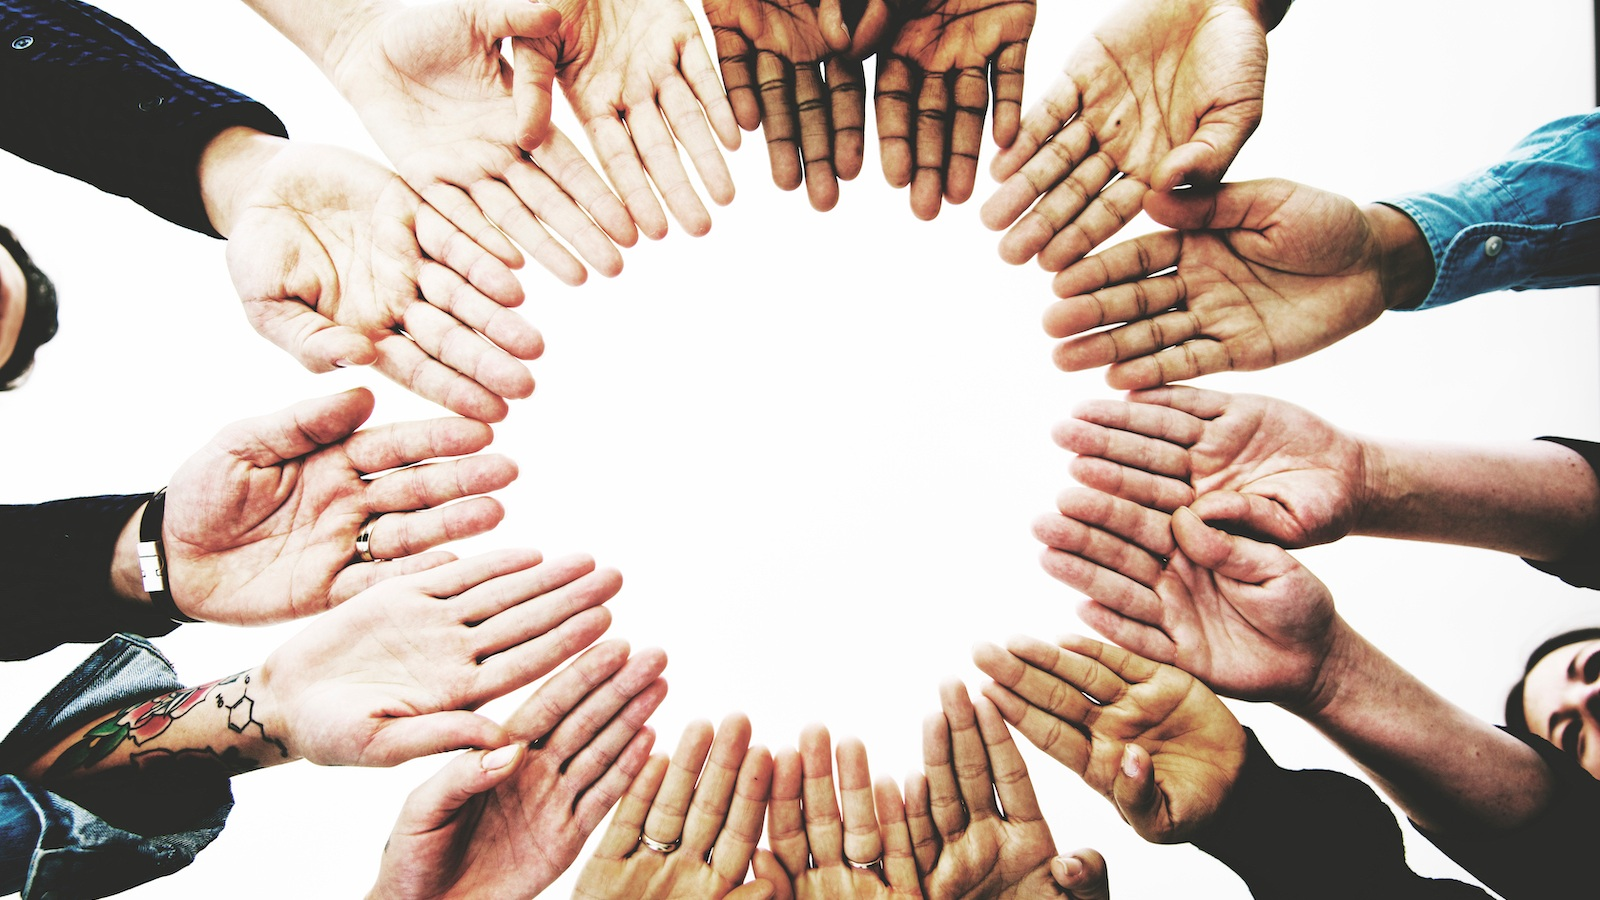 diverse-people-hands-together-partnership-P5VZKPZ.jpg